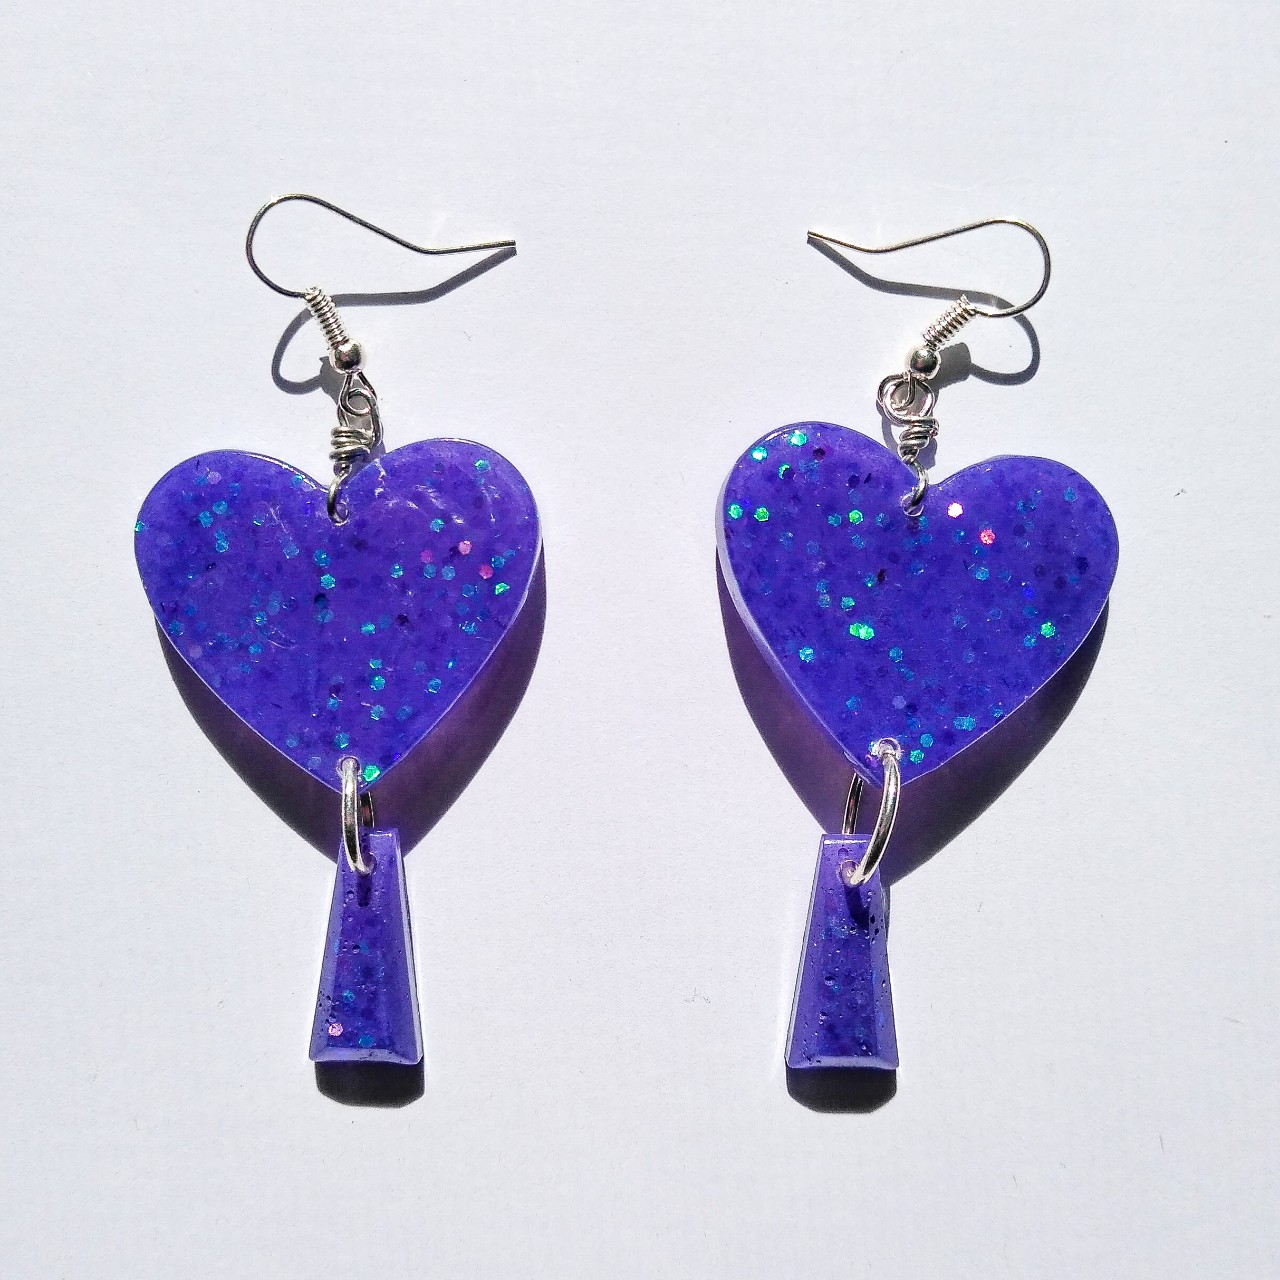 Product Image 1 - Handcrafted resin purple glittery heart